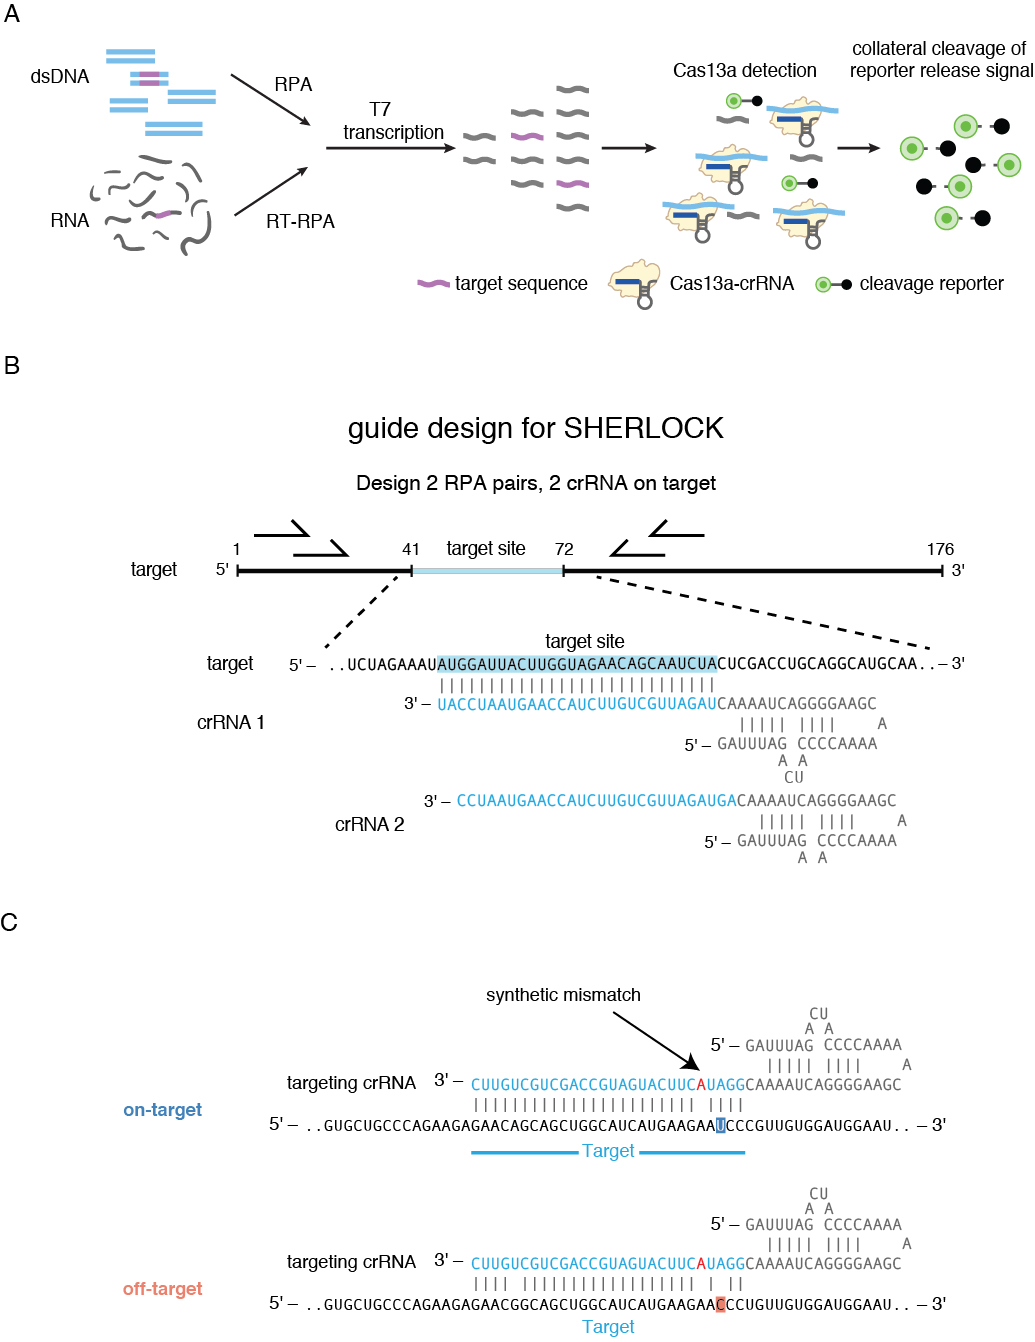 Figure 4.   Nucleic acid detection with SHERLOCK.